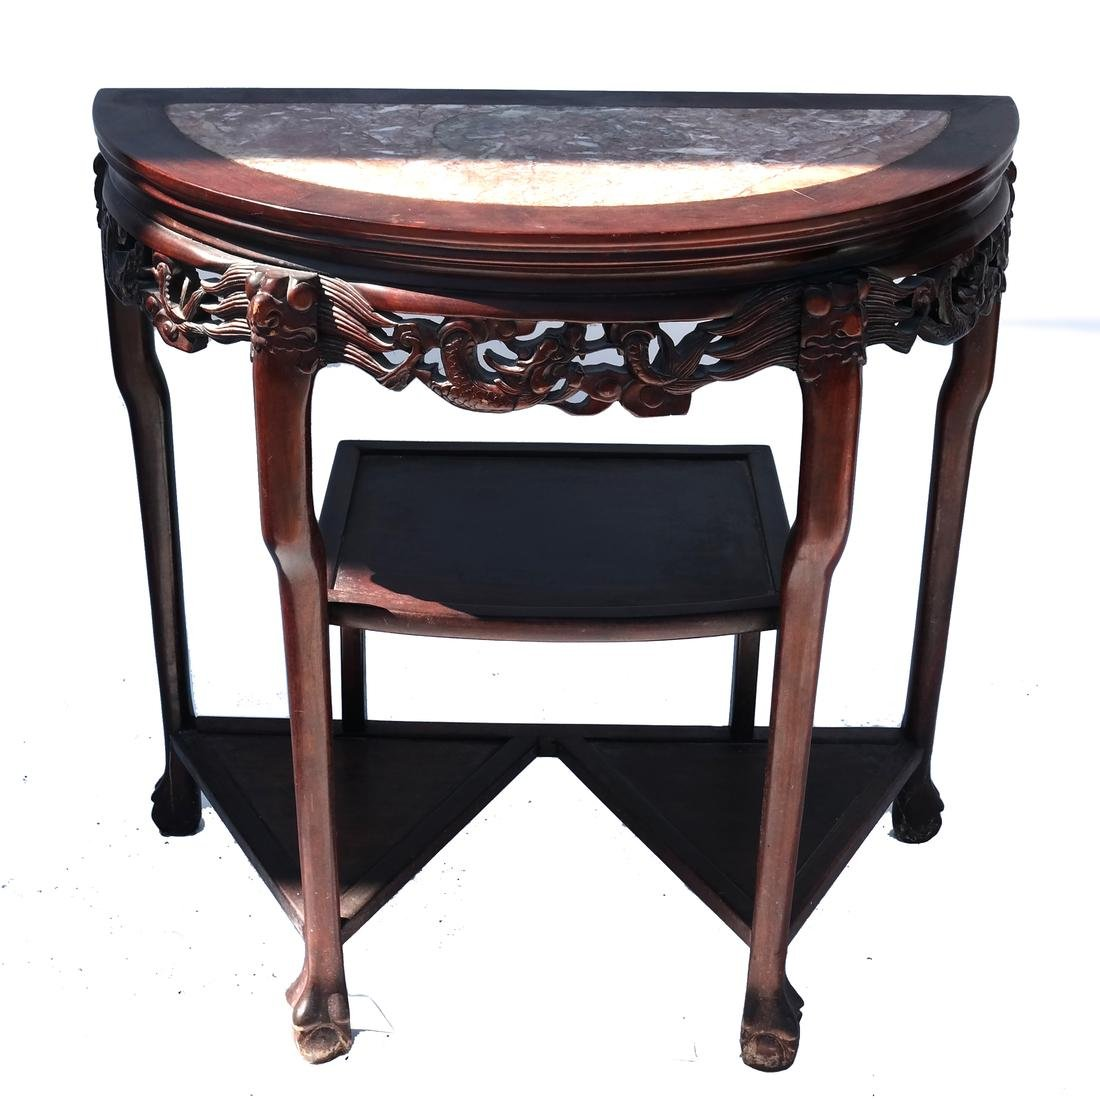 Chinese Carved Wood Marble-Topped Demilune Table